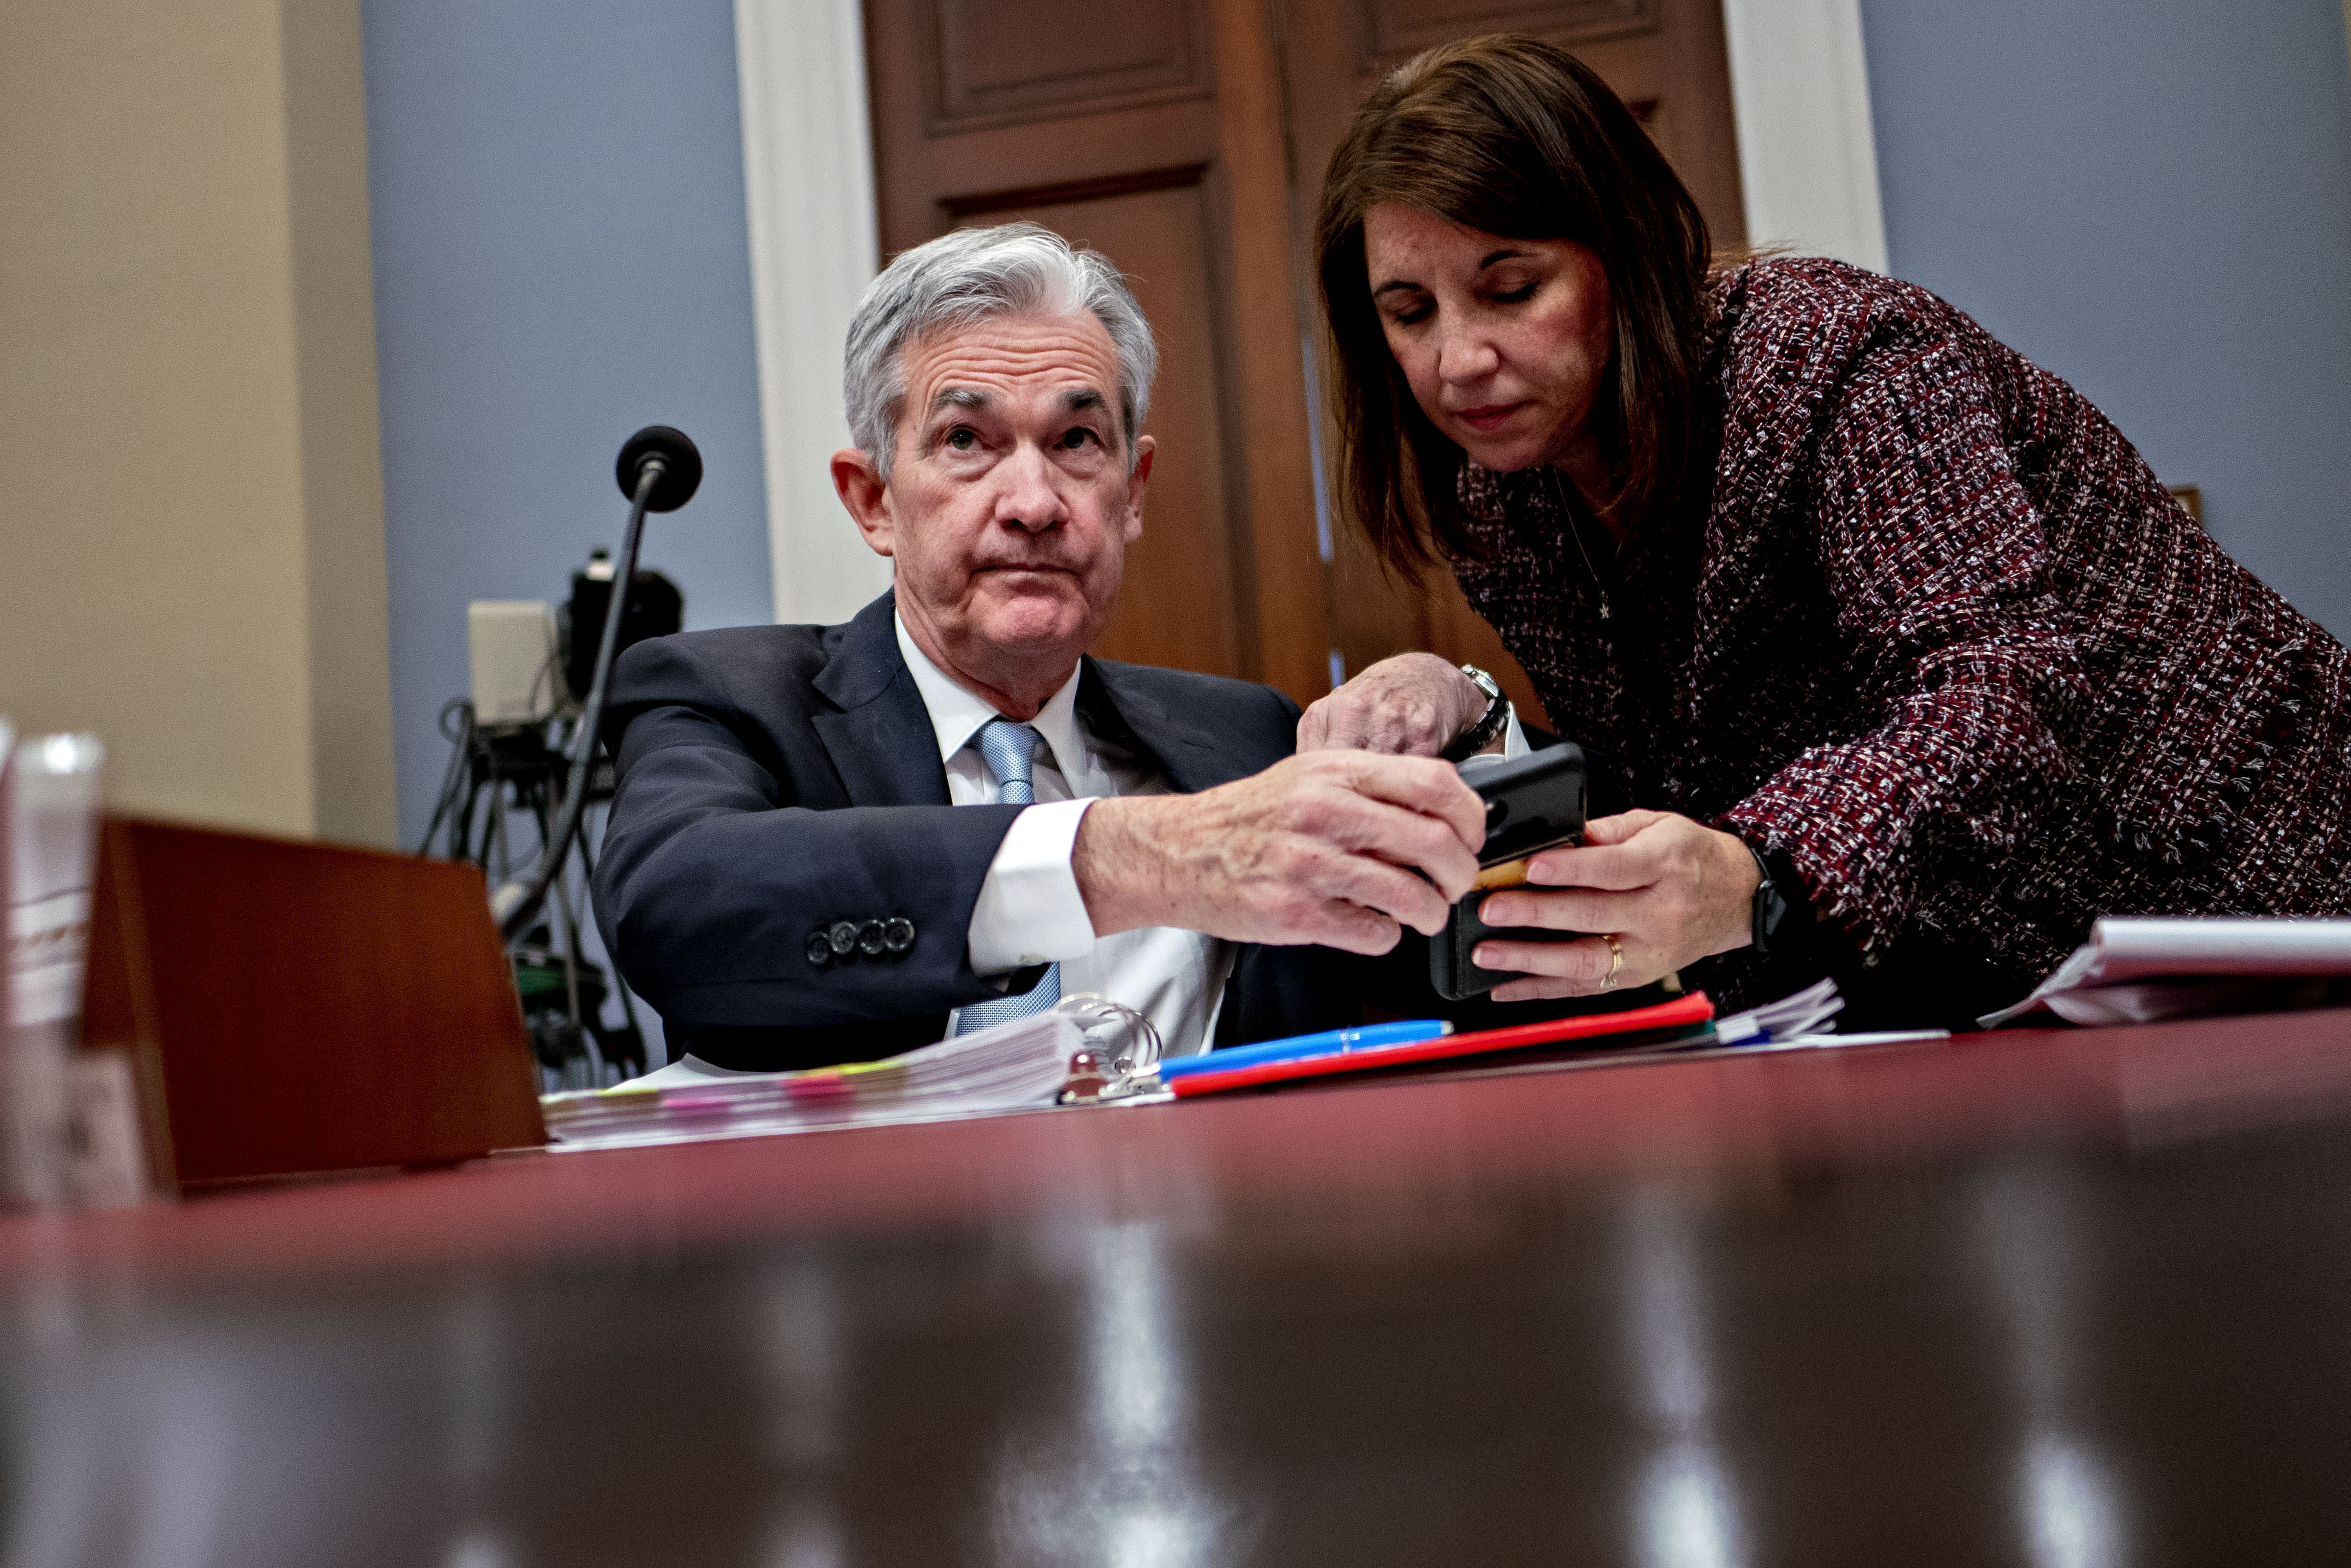 The Twittersphere may be shaping the Federal Reserve's thinking more than we know